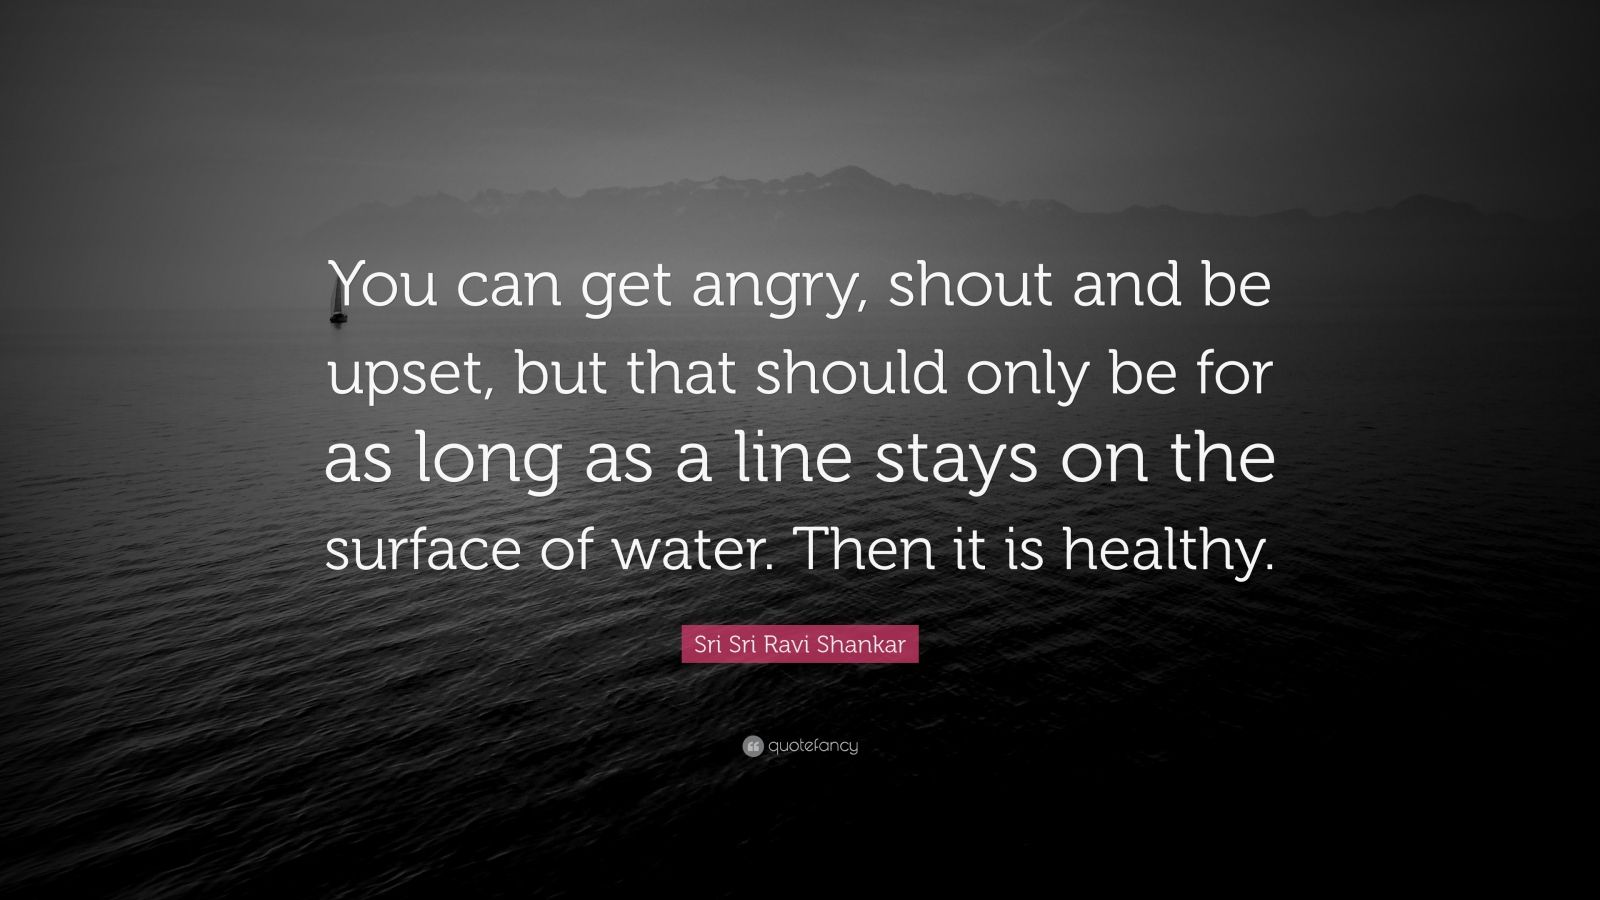 """Sri Sri Ravi Shankar Quote: """"You can get angry, shout and be upset, but that should only be for as long as a line stays on the surface of water. Then it is healthy."""""""